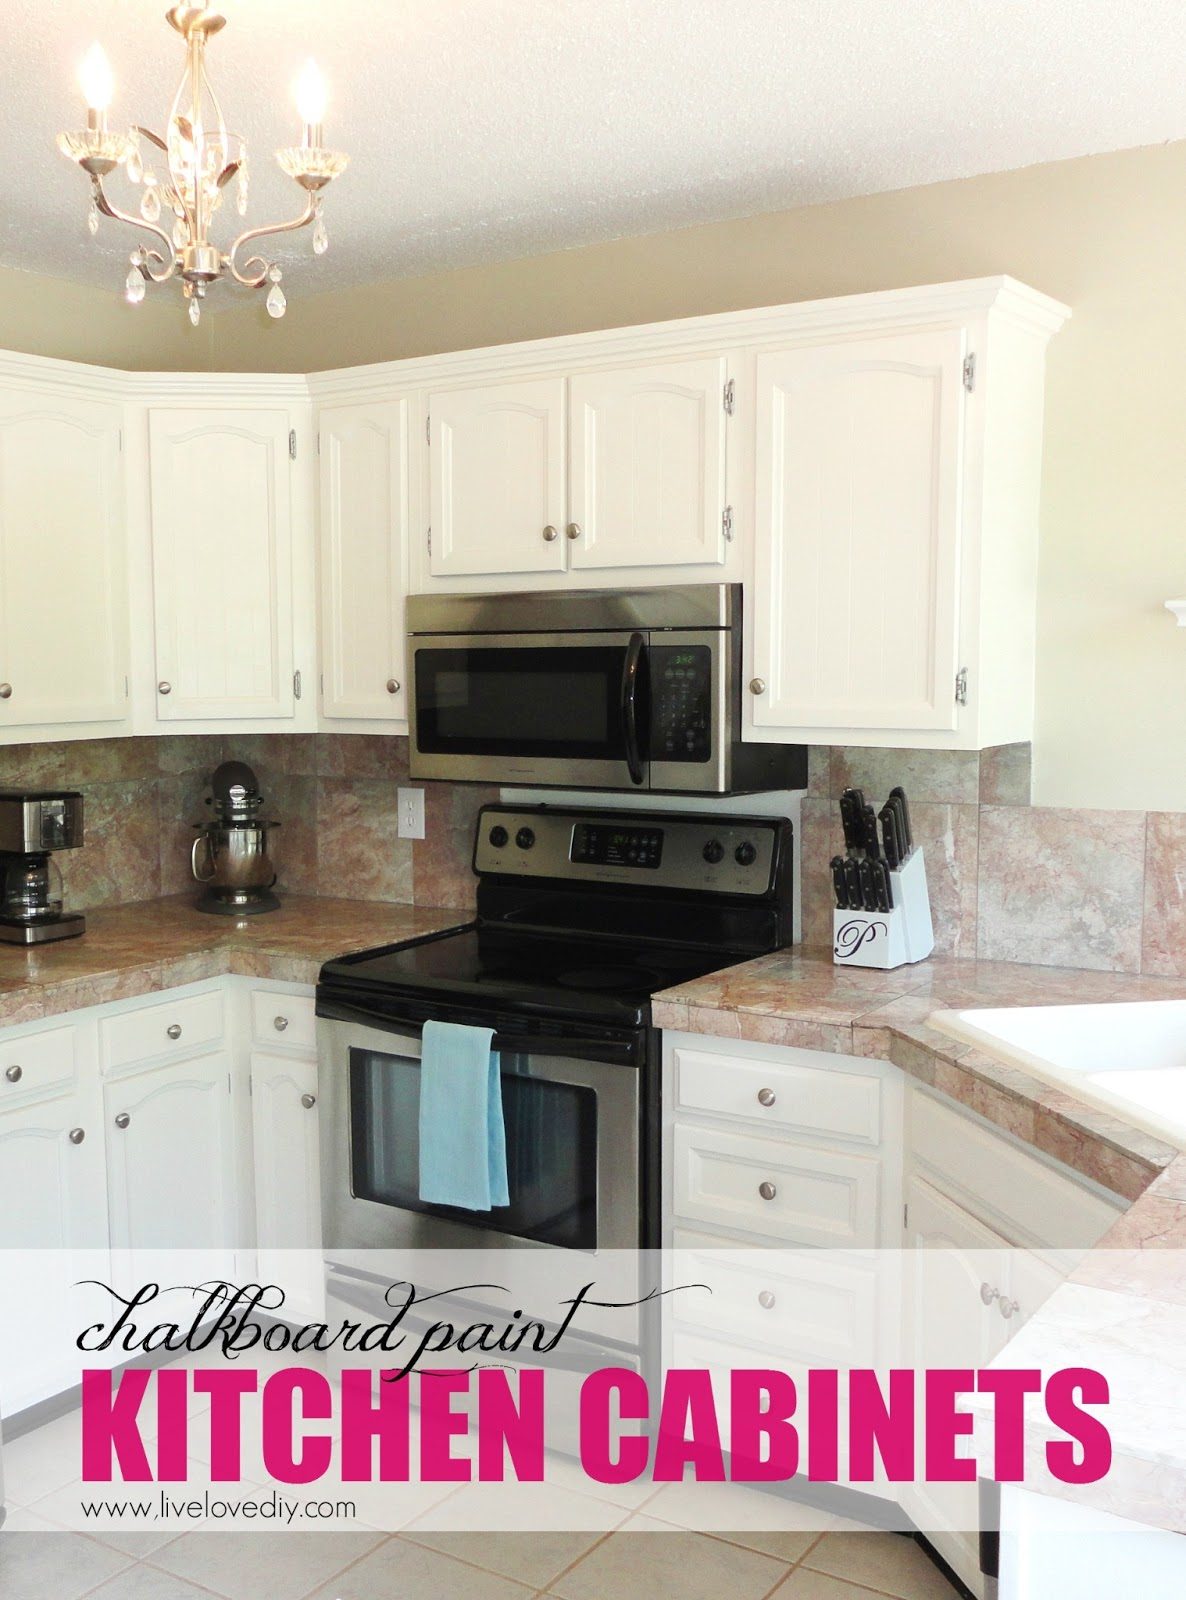 The Chalkboard Paint Kitchen Cabinet Makeover